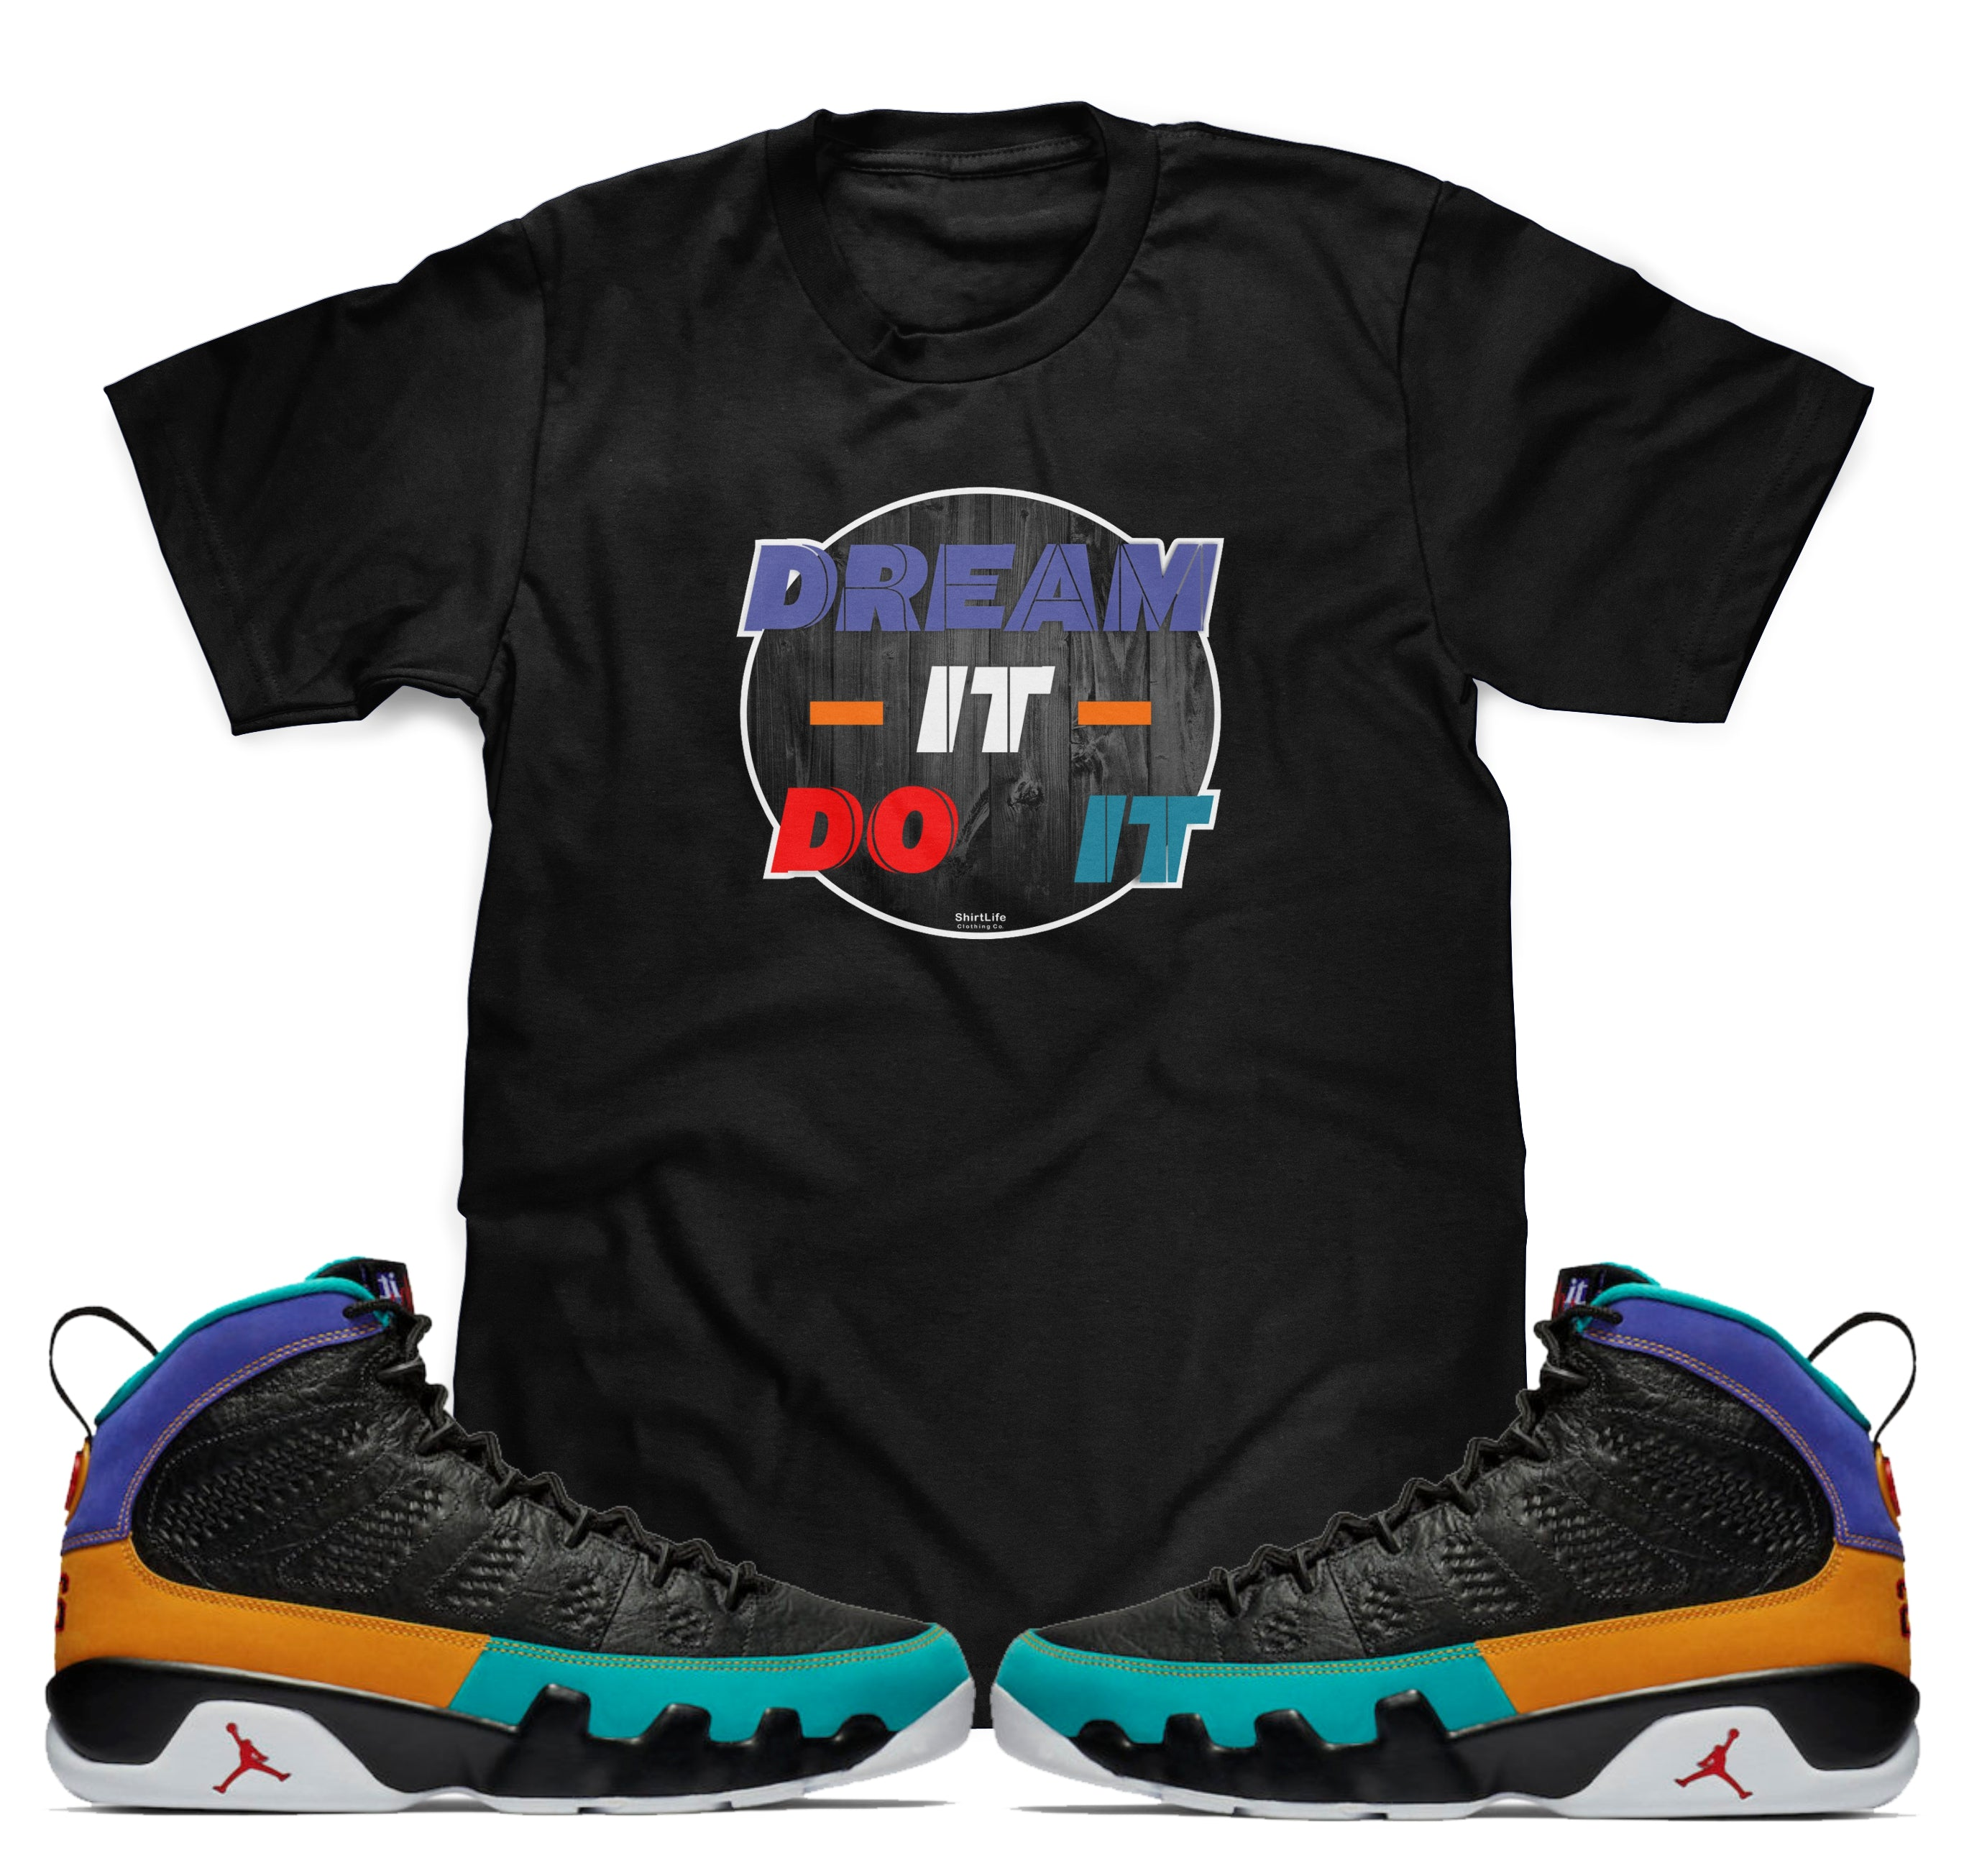 5813d26d1ce3b3 Dream it Do it Tee To Match Air Jordan Retro 9 Sneakers – ShirtLife Clothing  Company